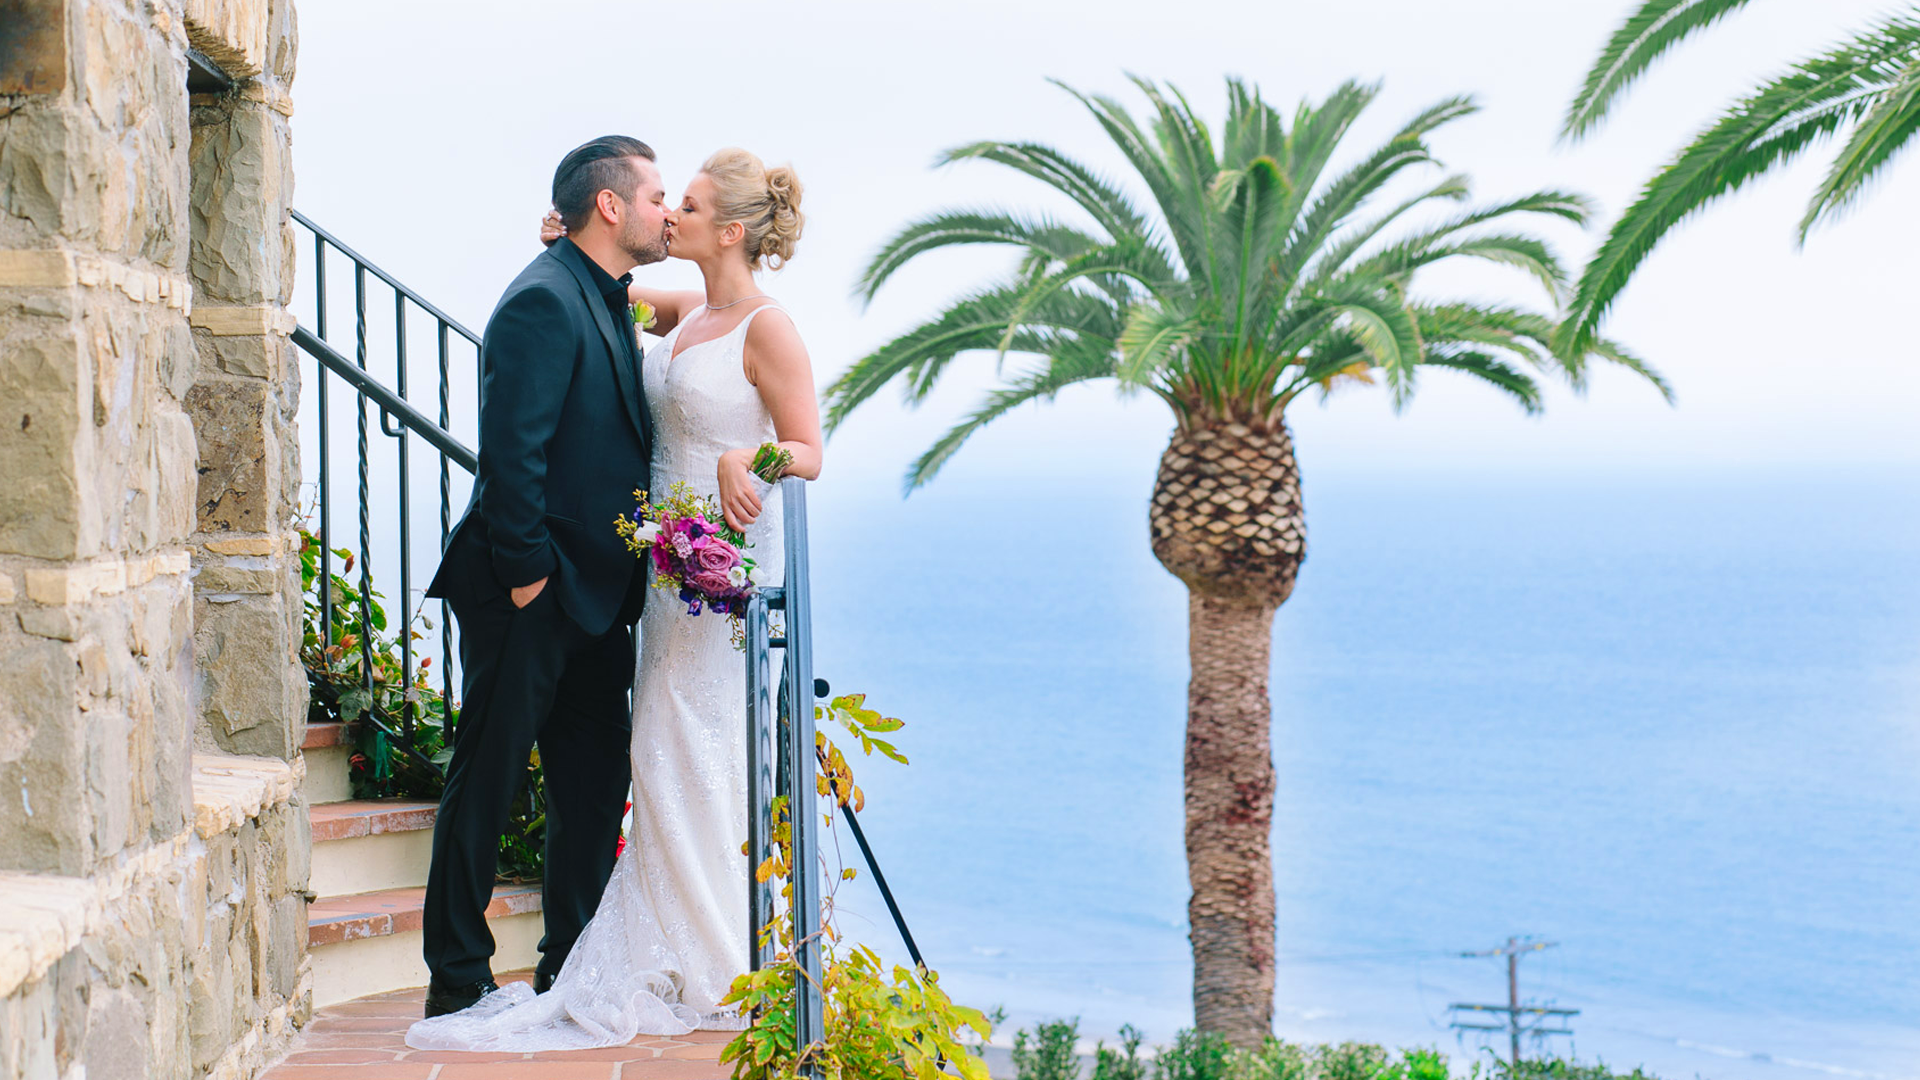 Brent + Samantha | Santa Monica, California | BelAir Bay Club